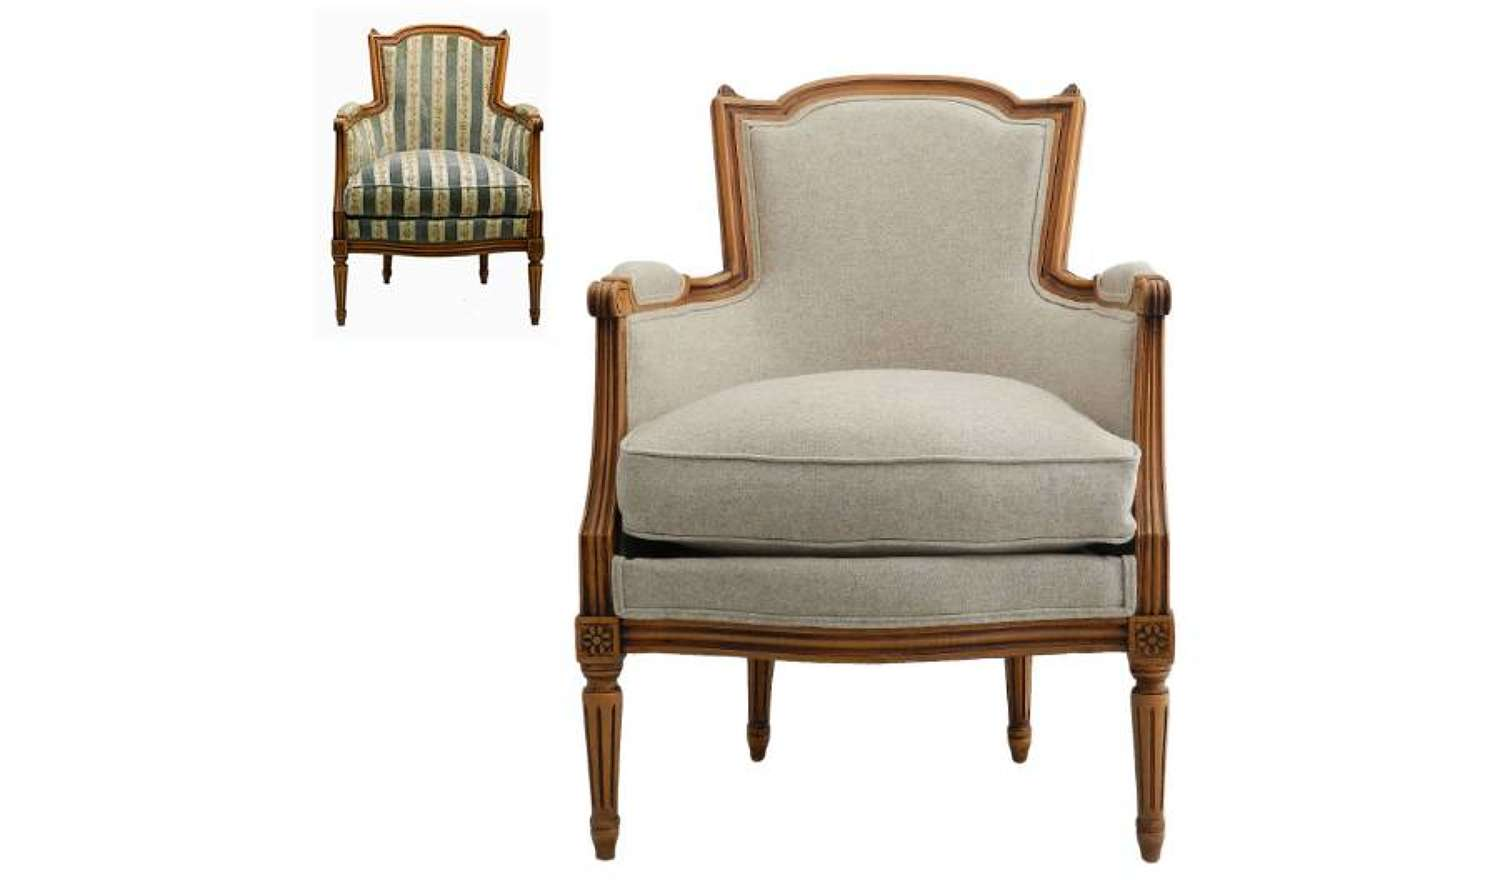 French Fauteuil Armchair Recovered to order